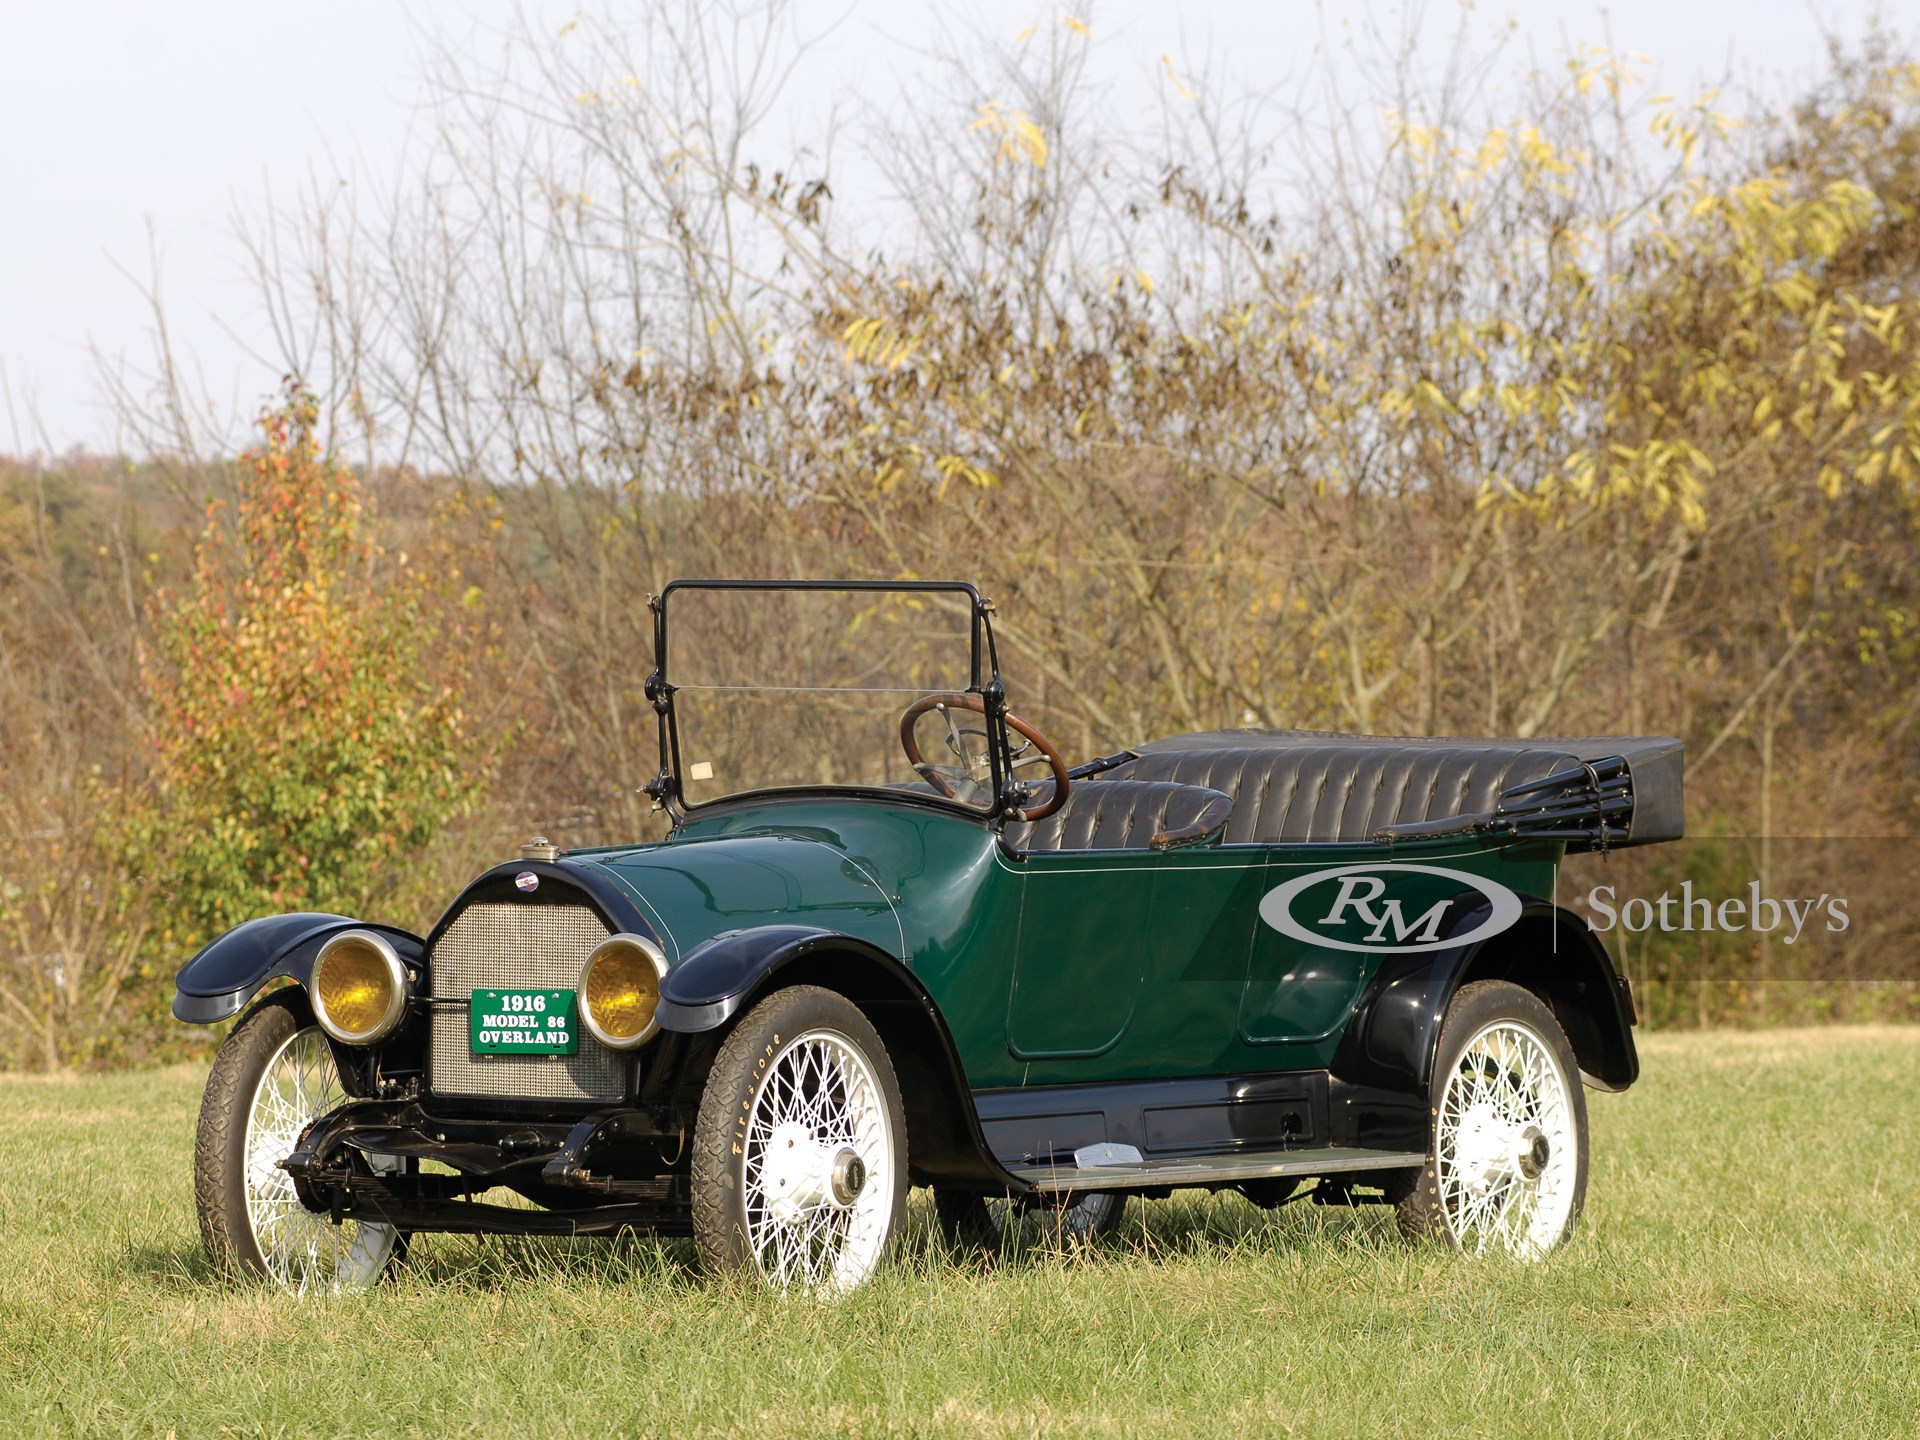 1916 Overland Model 86 Touring